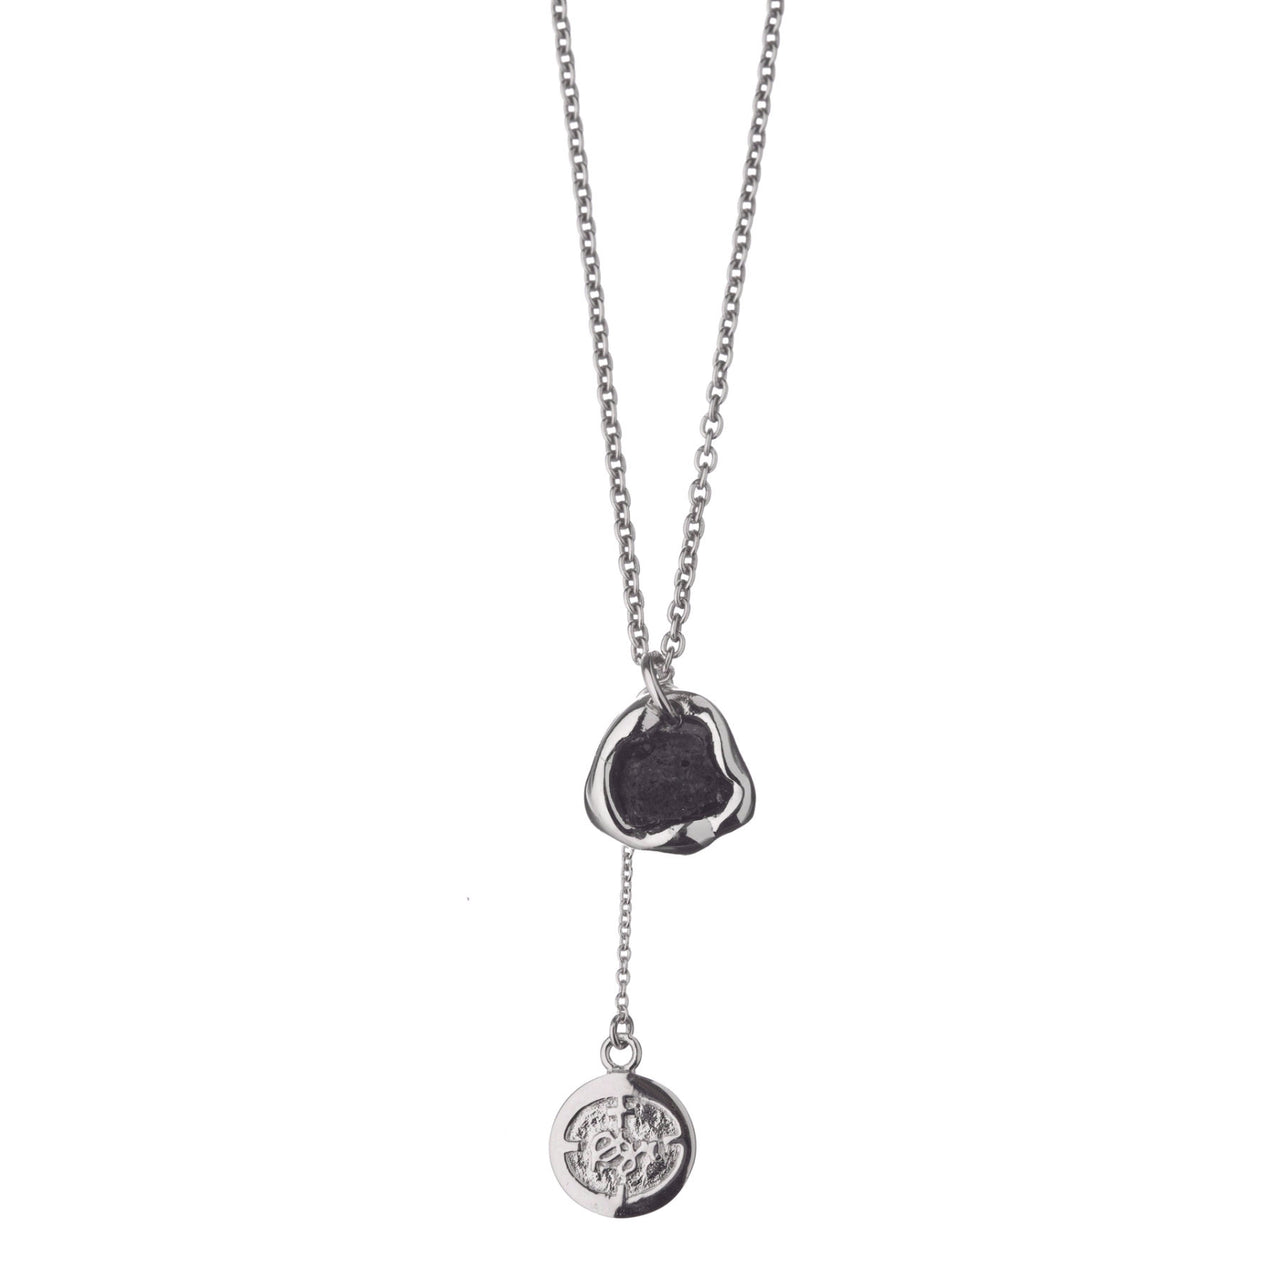 Hekla Silver Necklace with Icelandic Lava